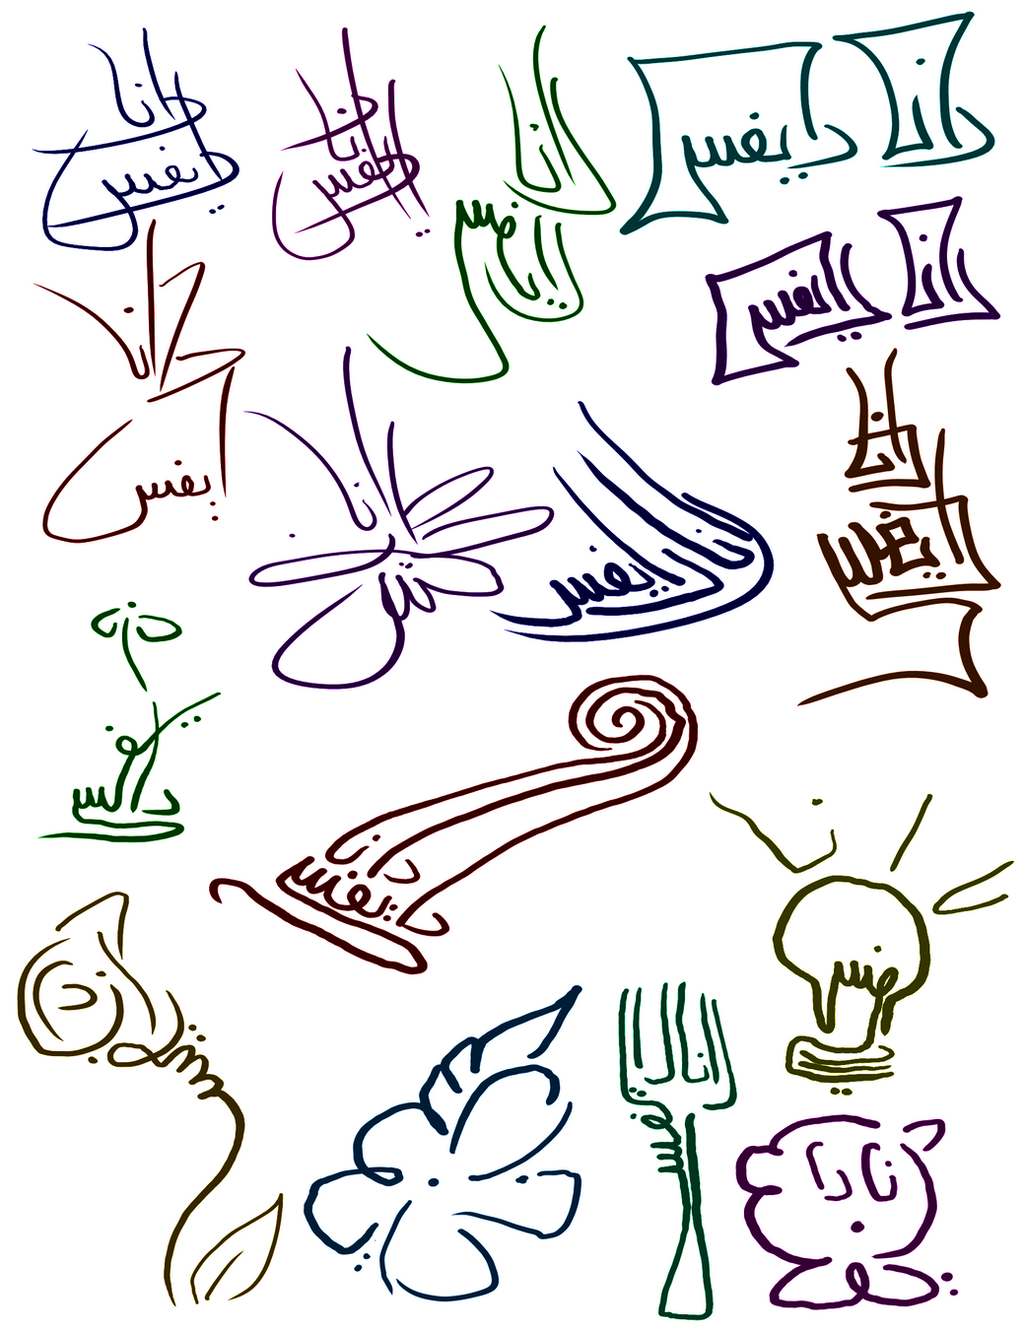 how to get a cool signature